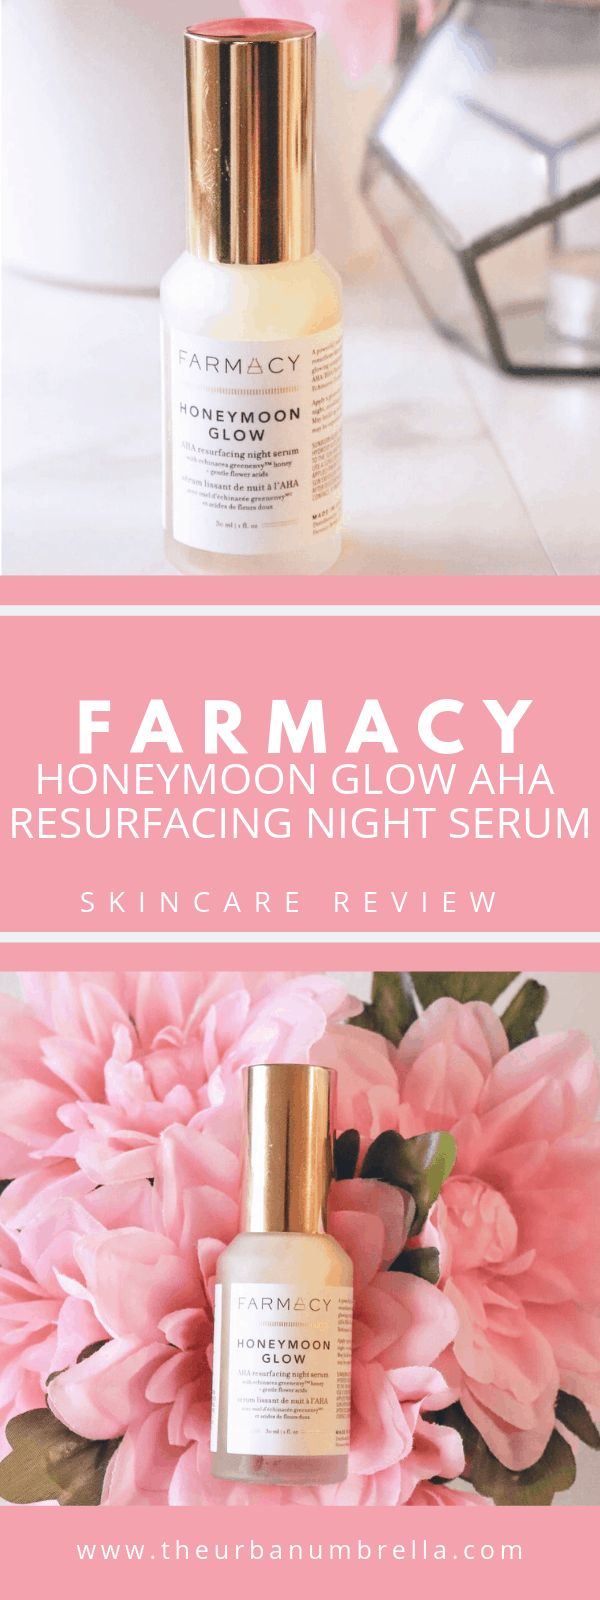 FARMACY Honeymoon Glow AHA Resurfacing Night Serum Skincare Review